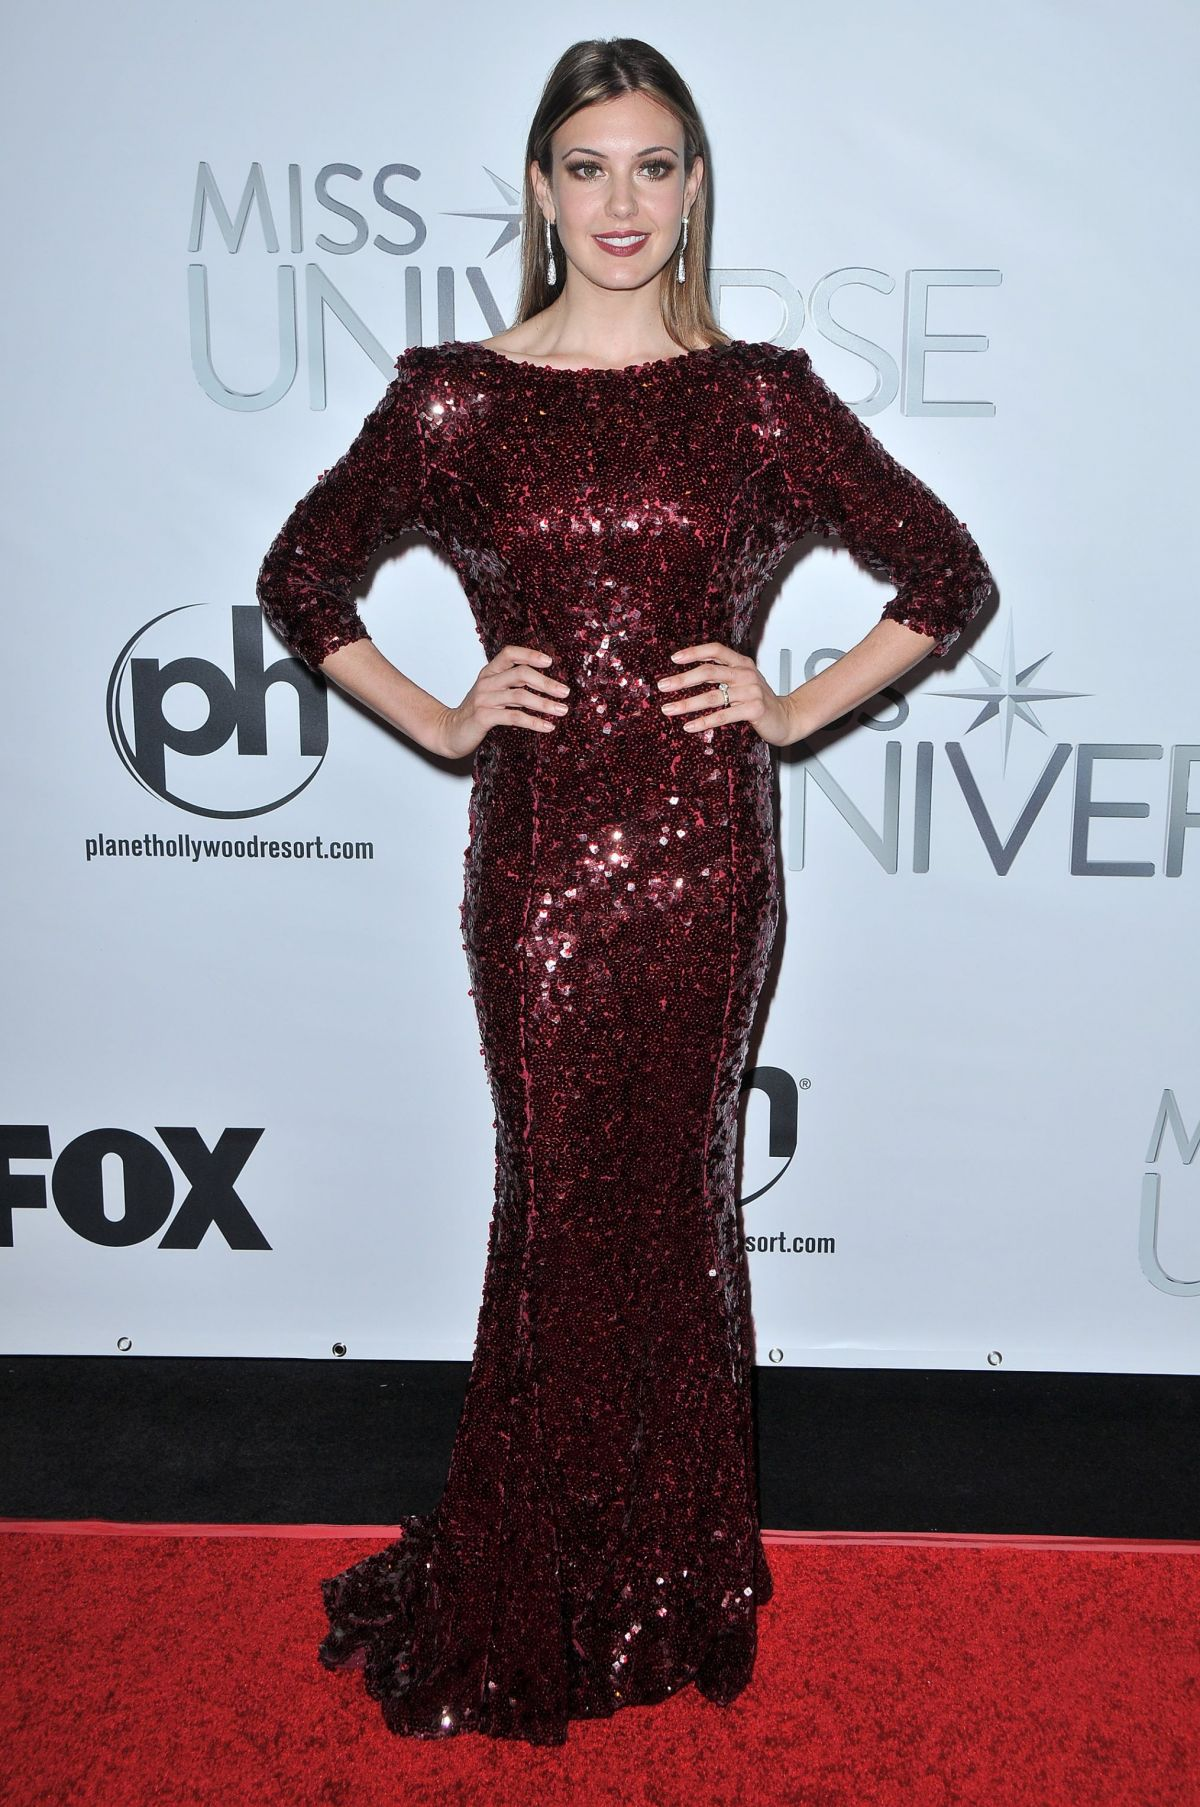 ERIN BRADY at 2015 Miss Universe Pageant in Las Vegas 12/20/15